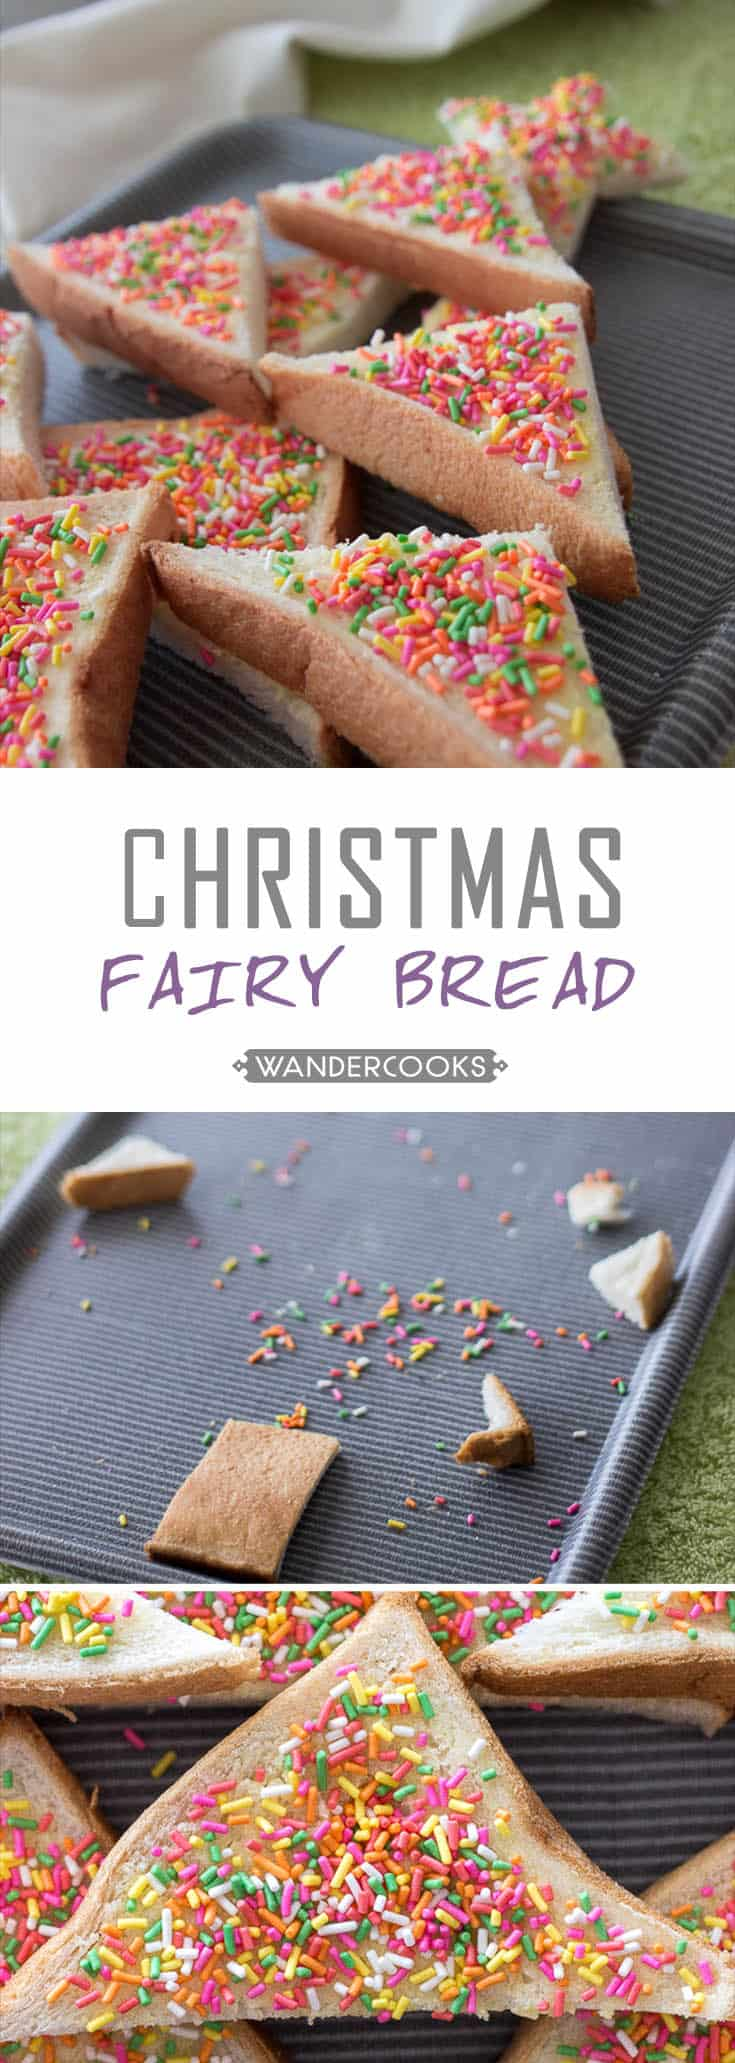 Australian Christmas Fairy Bread - It's crunchy, it's creamy, it's fluffy and let's face it - it's the next best thing since sliced bread. Christmas themed & Vegetarian. | wandercooks.com